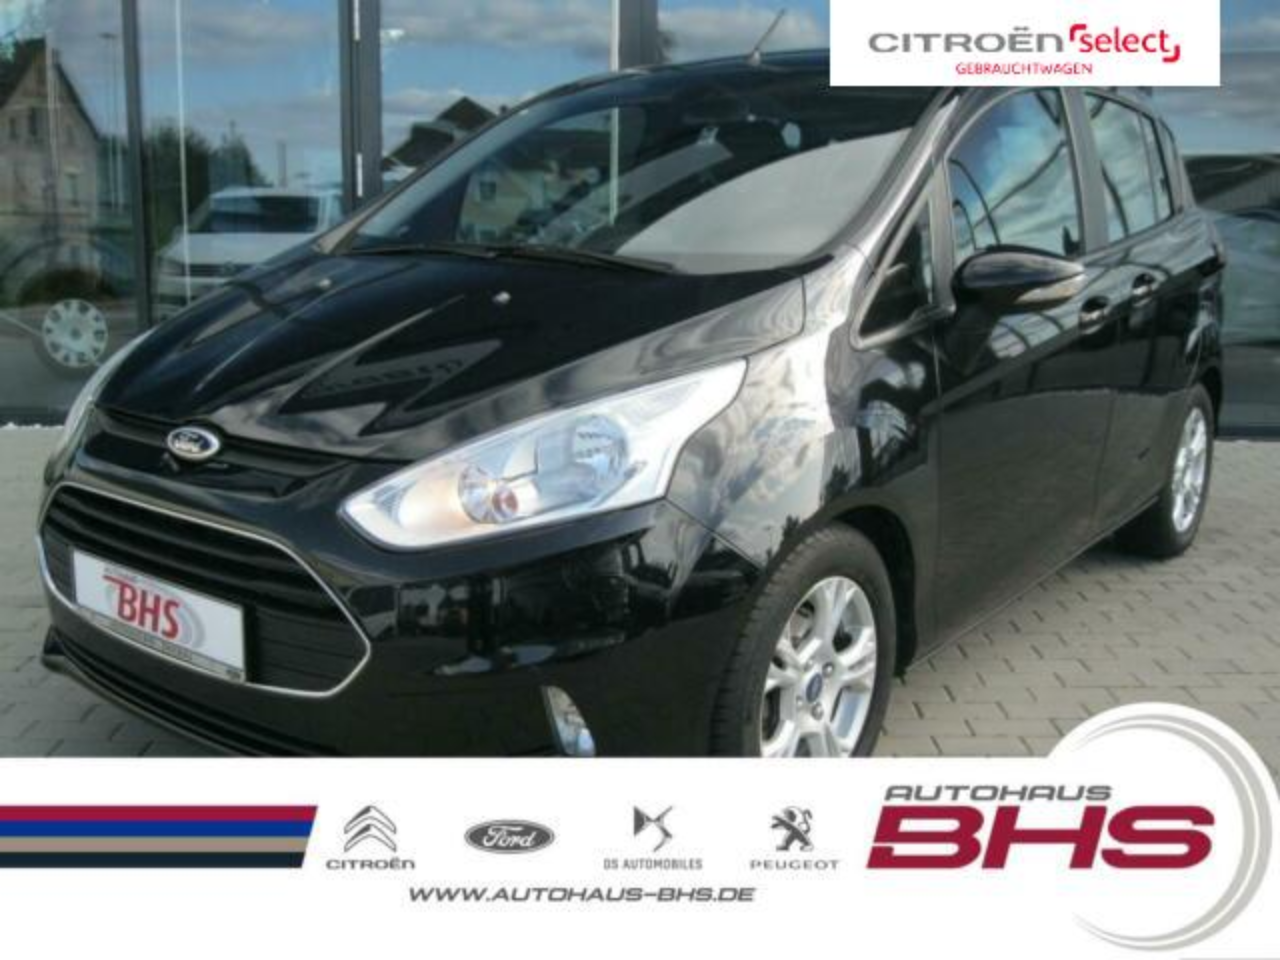 Ford B-Max 1.0 EcoBoost 100 PS SYNC Edition